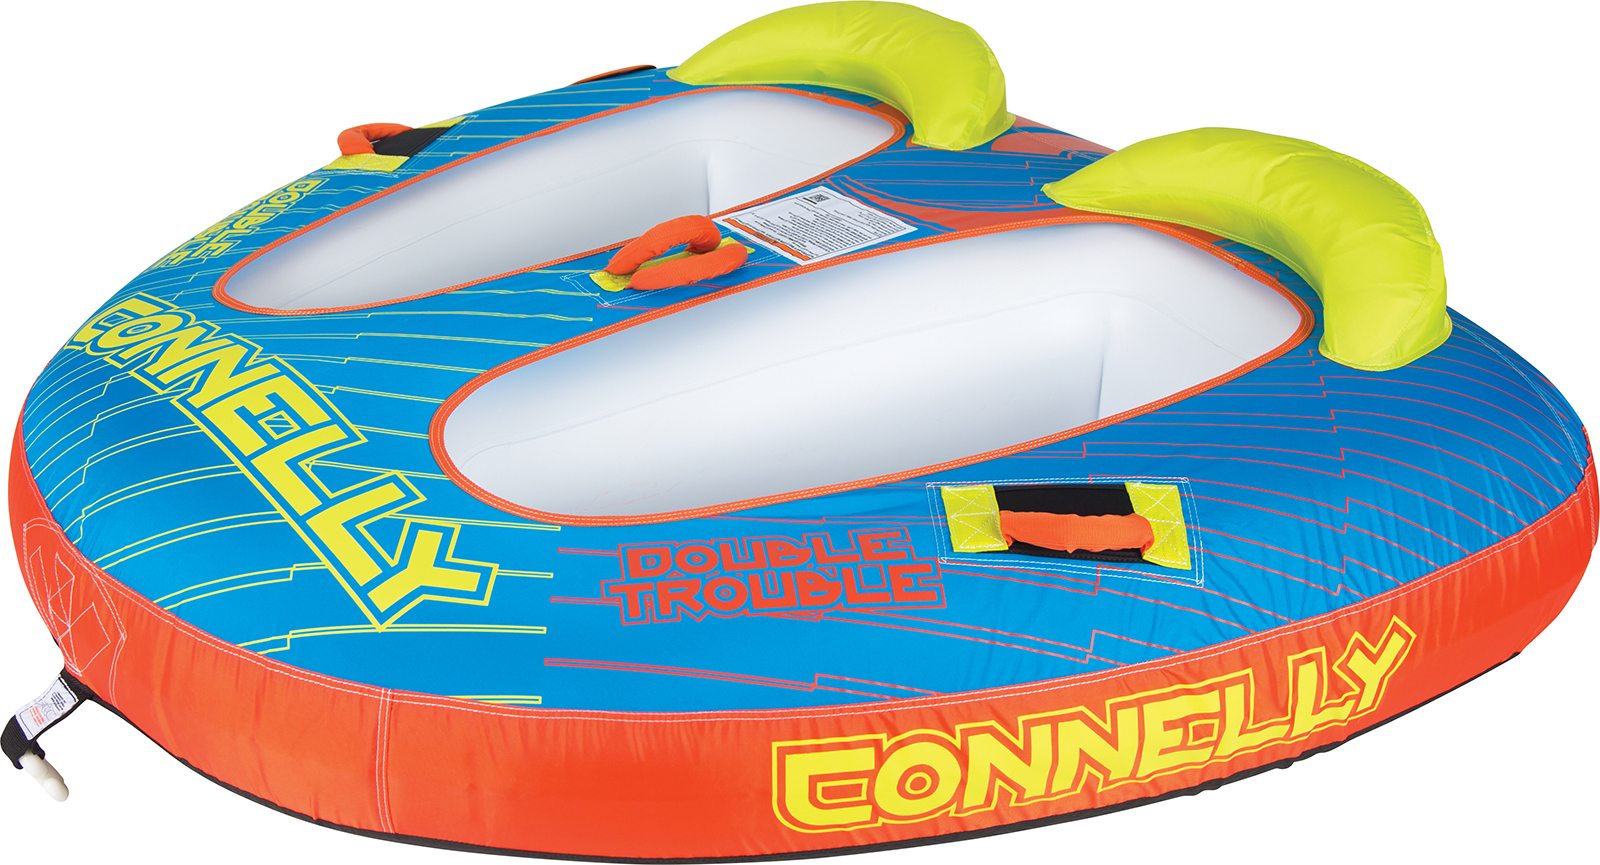 DOUBLE TROUBLE TOWABLE TUBE CONNELLY 2019